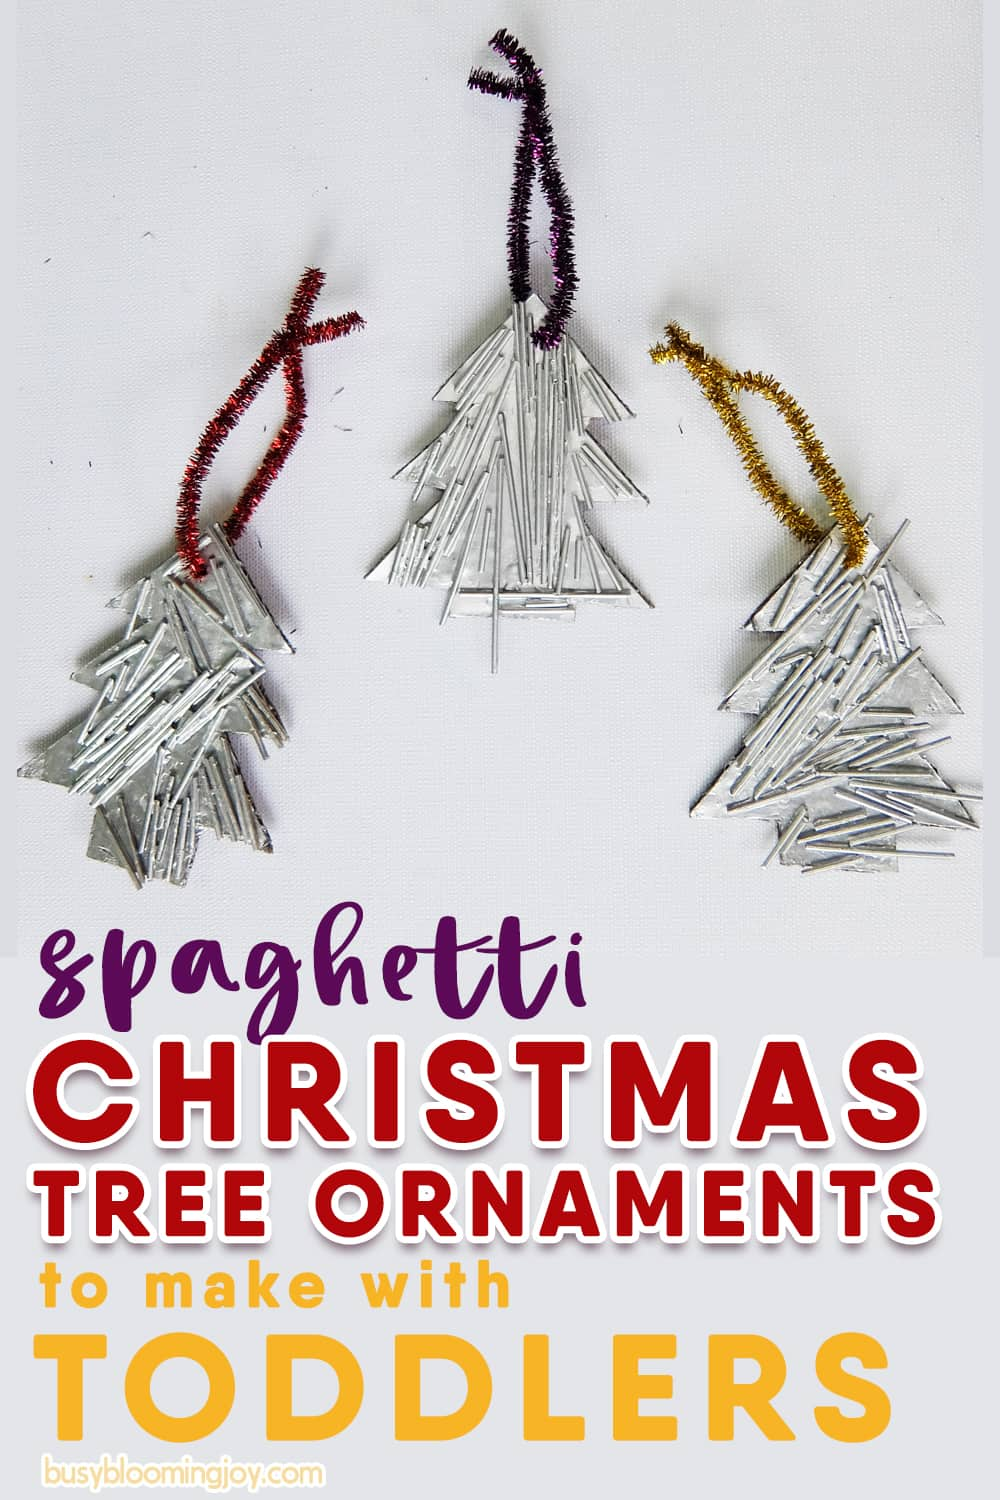 spaghetti Christmas tree ornaments